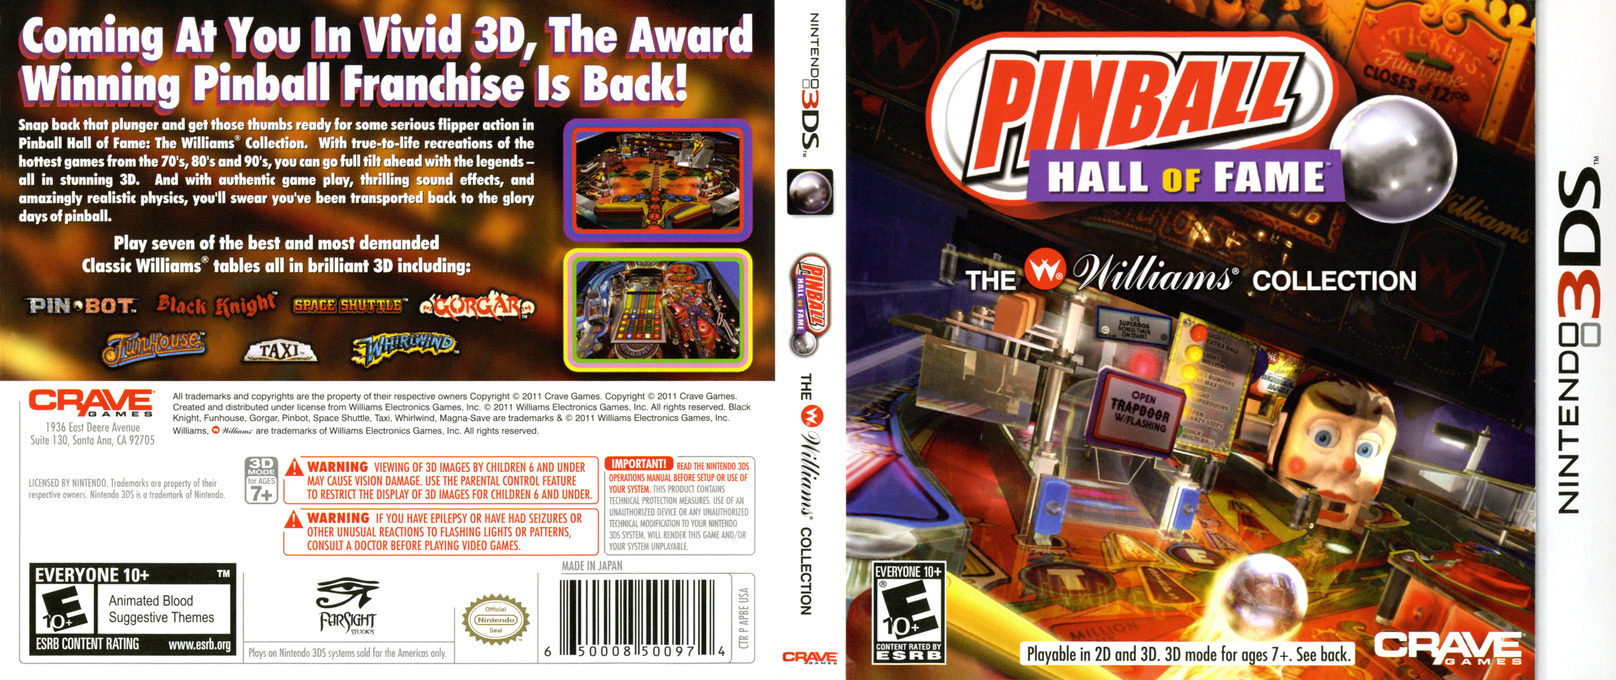 Pinball Hall of Fame - The Williams' Collection 3DS coverfullHQ (APBE)